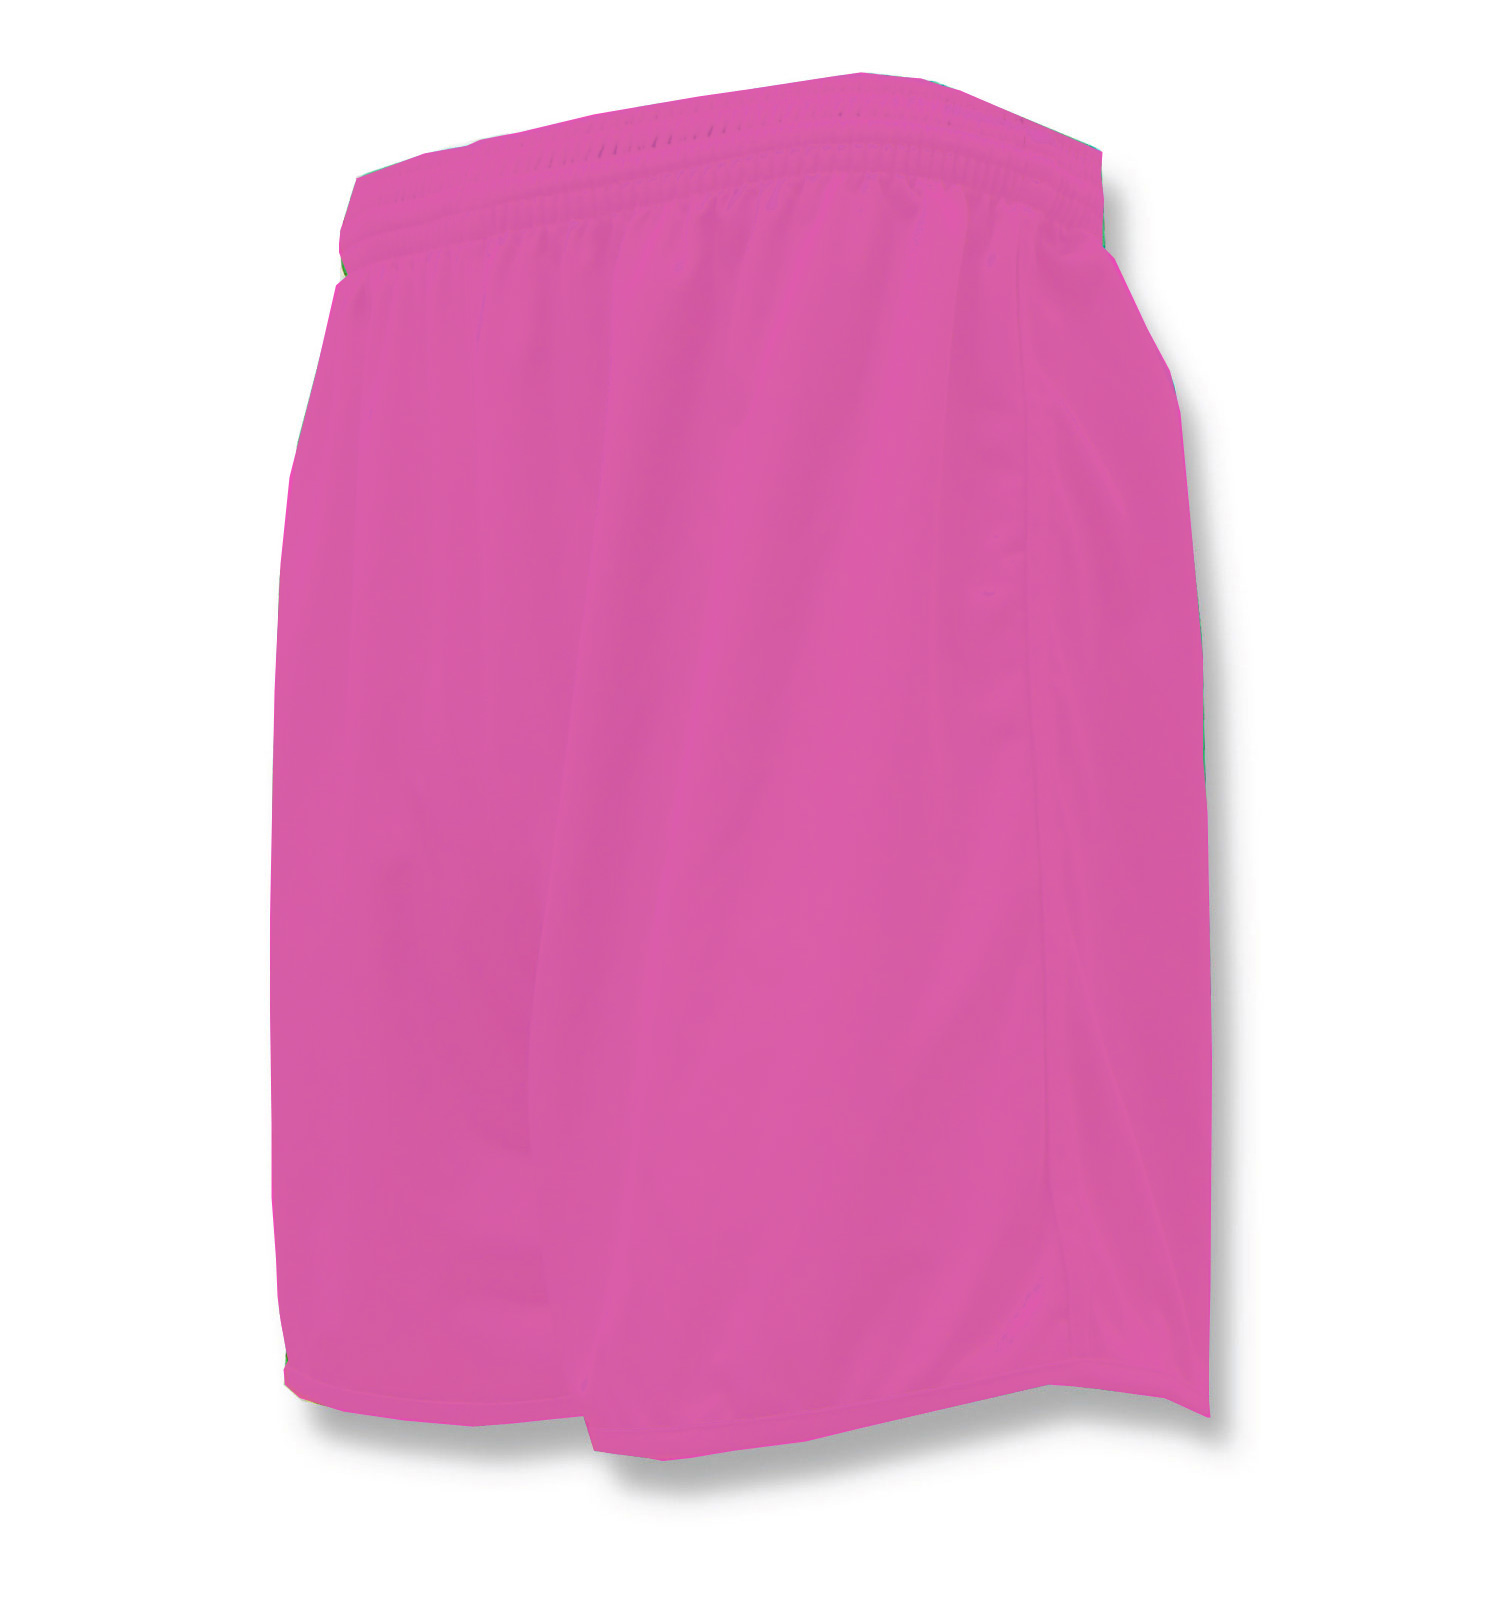 Bravo soccer shorts in pink by Code Four Athletics